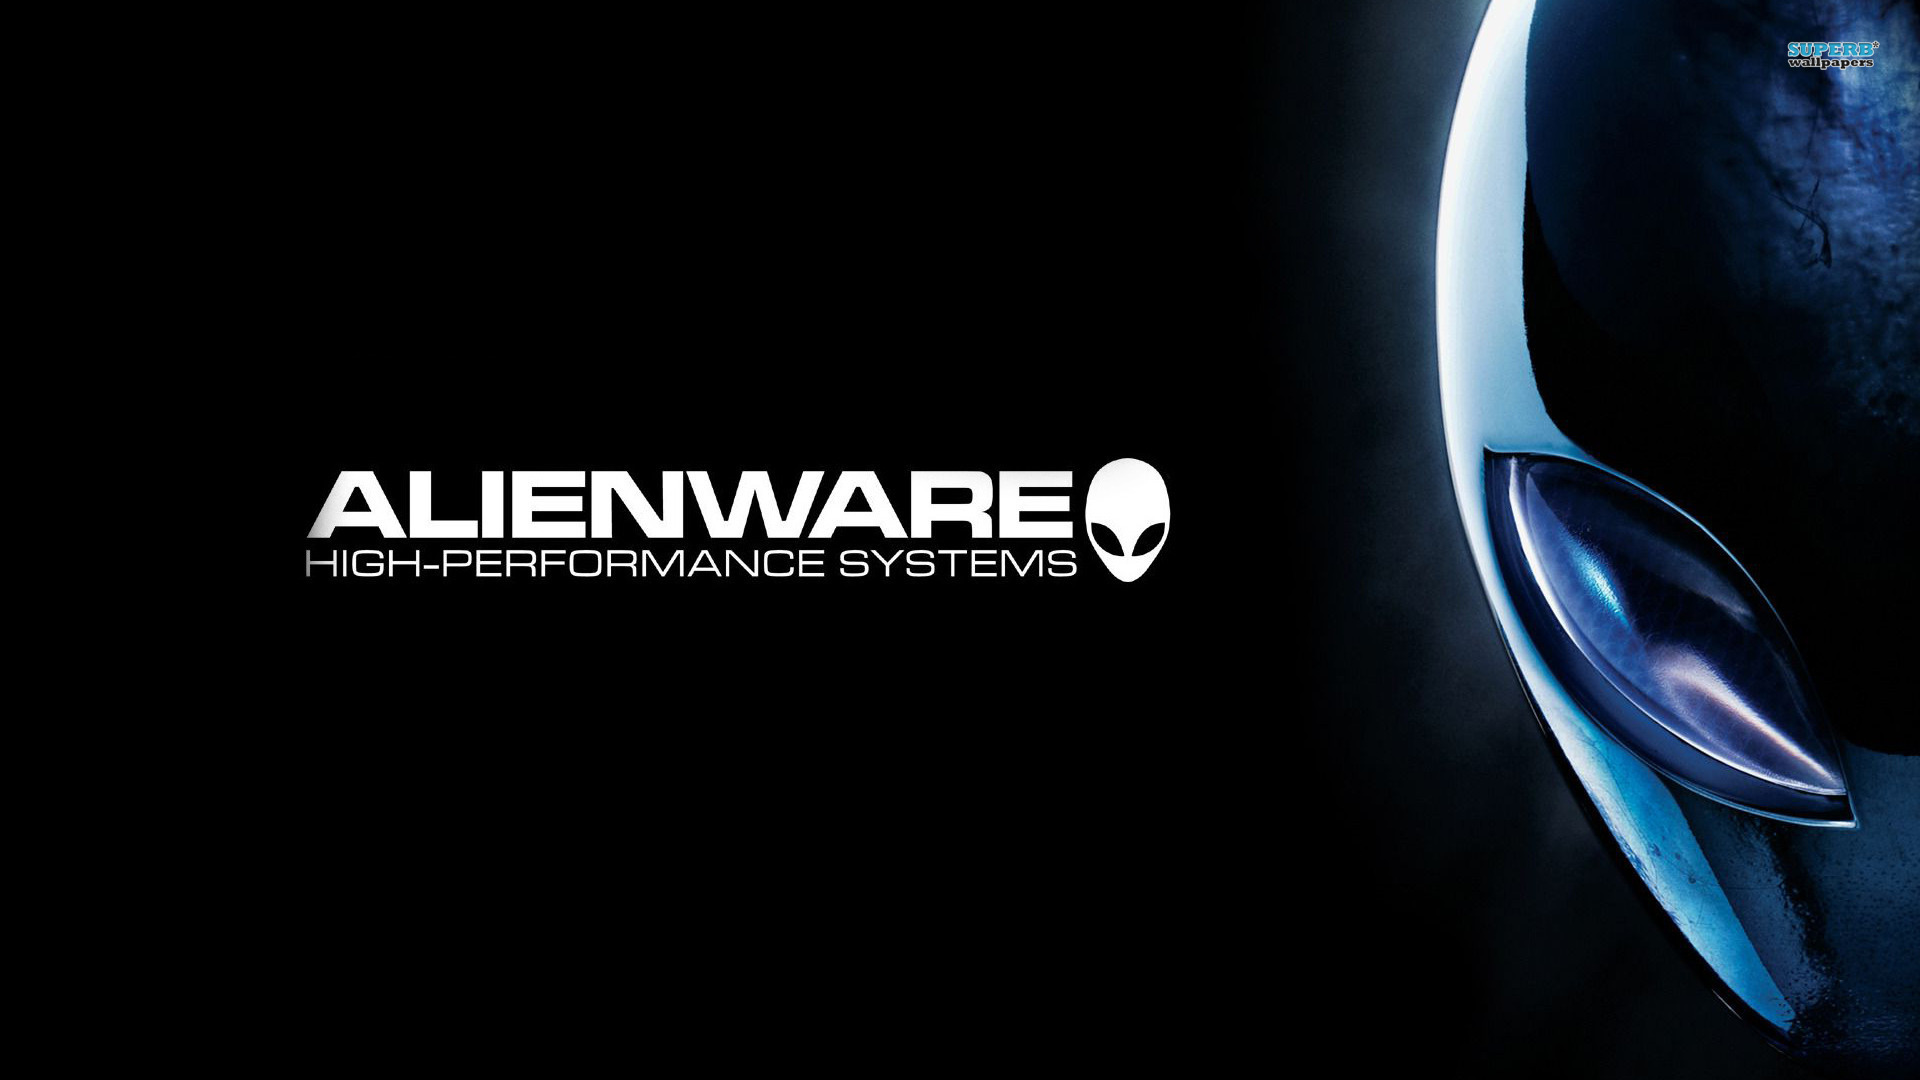 Alienware wallpapers for windows 7 wallpapersafari -  Wallpapersafari Alienware Wallpapers Best Wallpapers